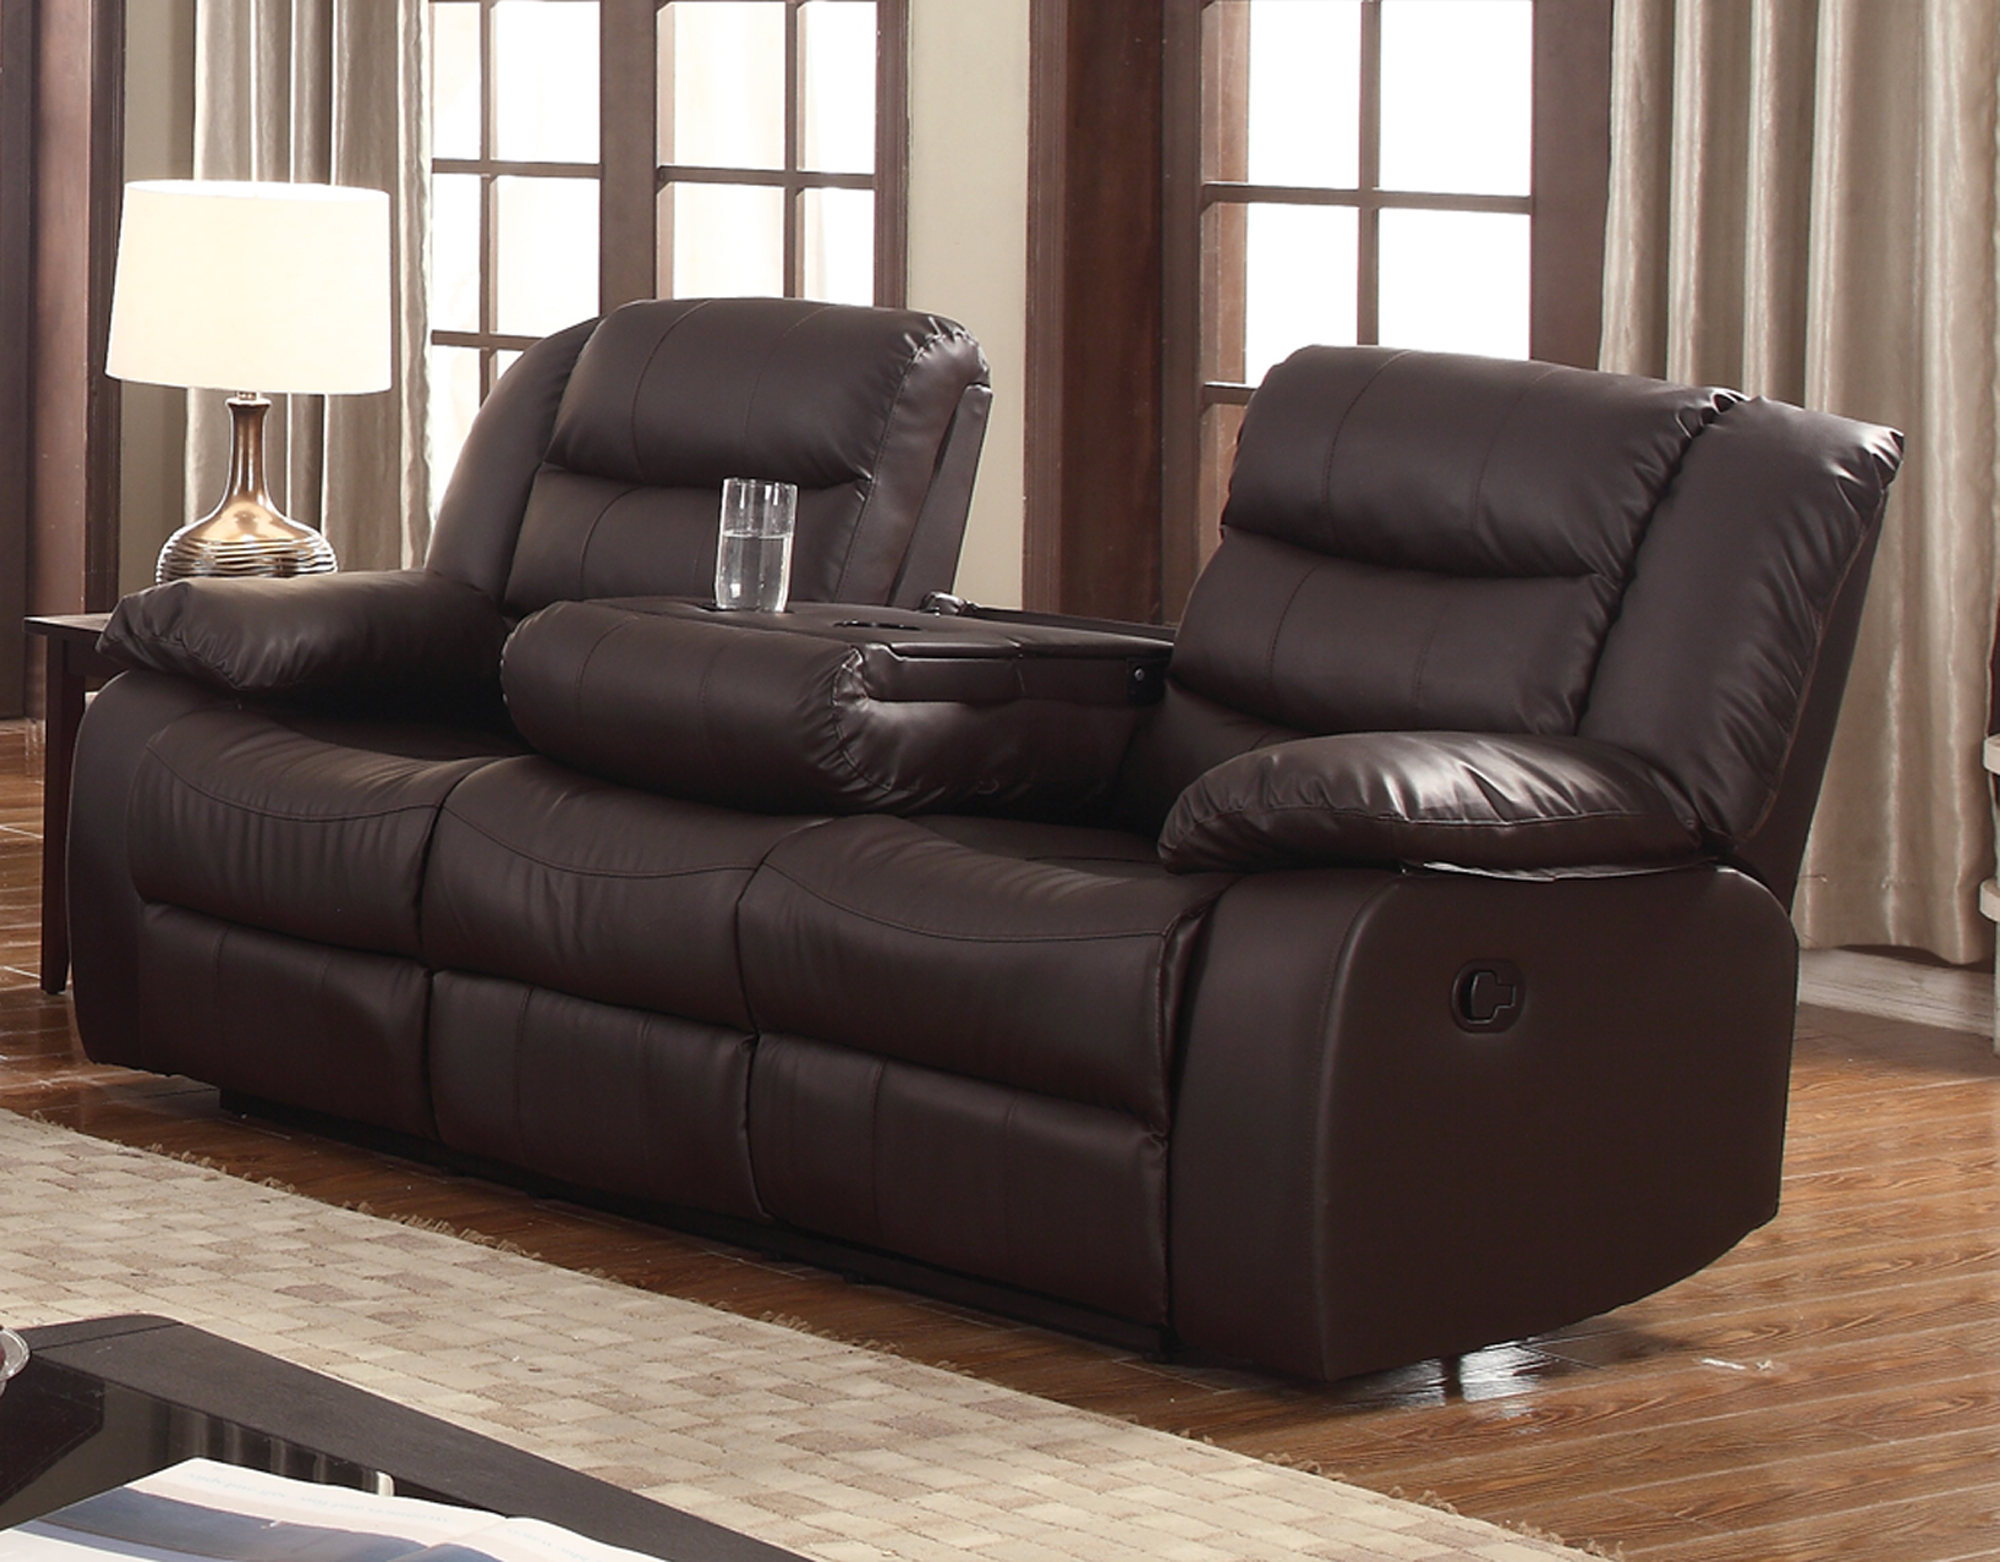 Layla Dark Brown Faux Leather Reclining Sofa with Drop-down tea table  sc 1 st  Walmart : faux leather reclining sofa - islam-shia.org